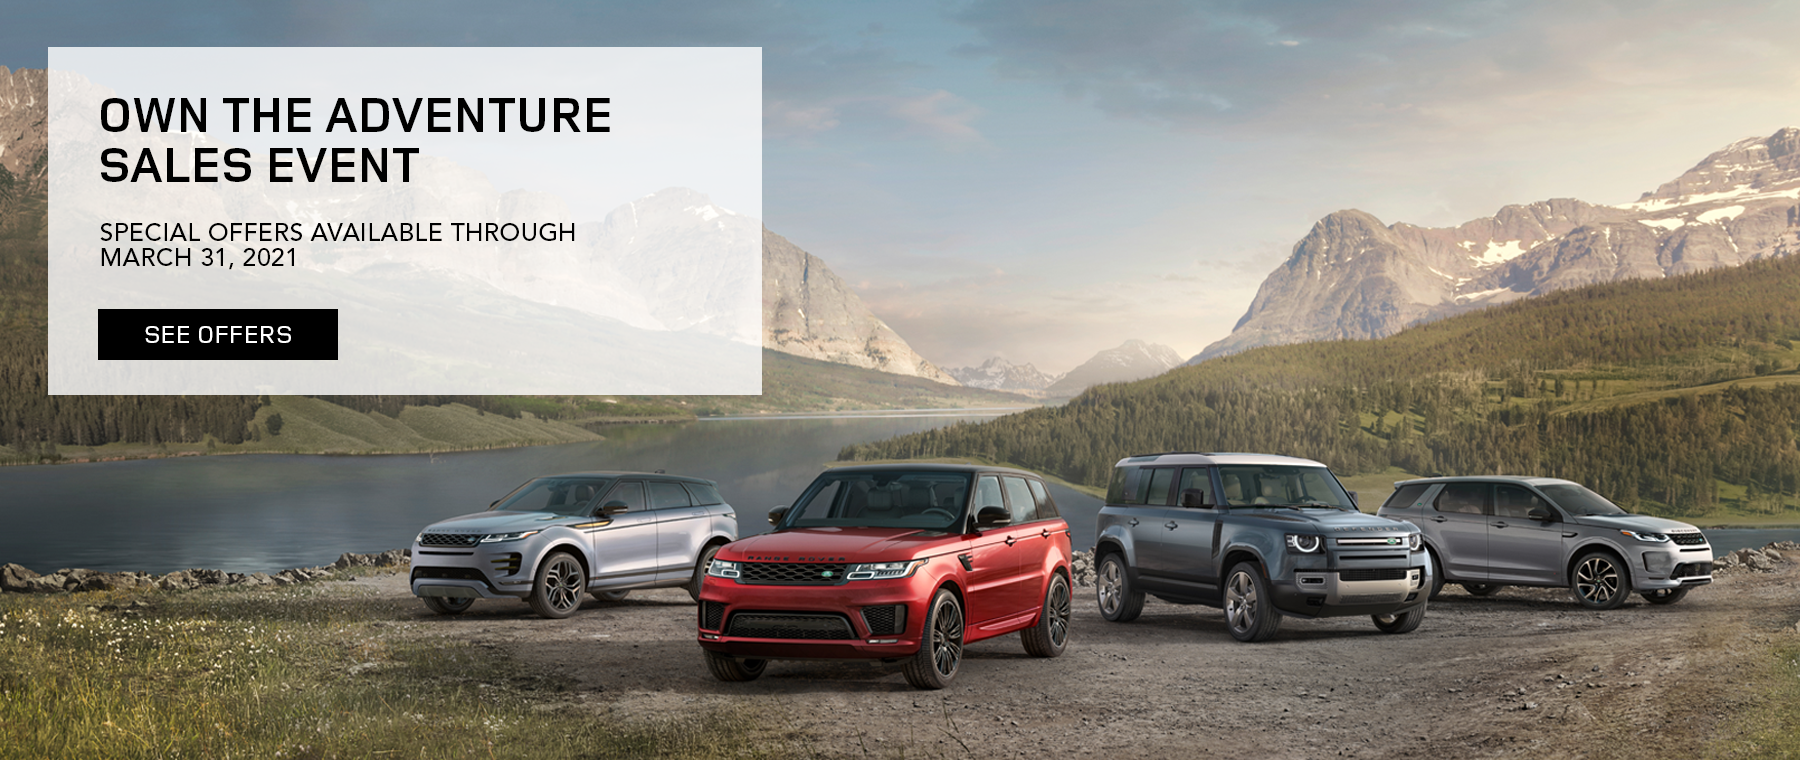 OWN THE ADVENTURE SALES EVENT SPECIAL OFFERS AVAILABLE THROUGH MARCH 31, 2021